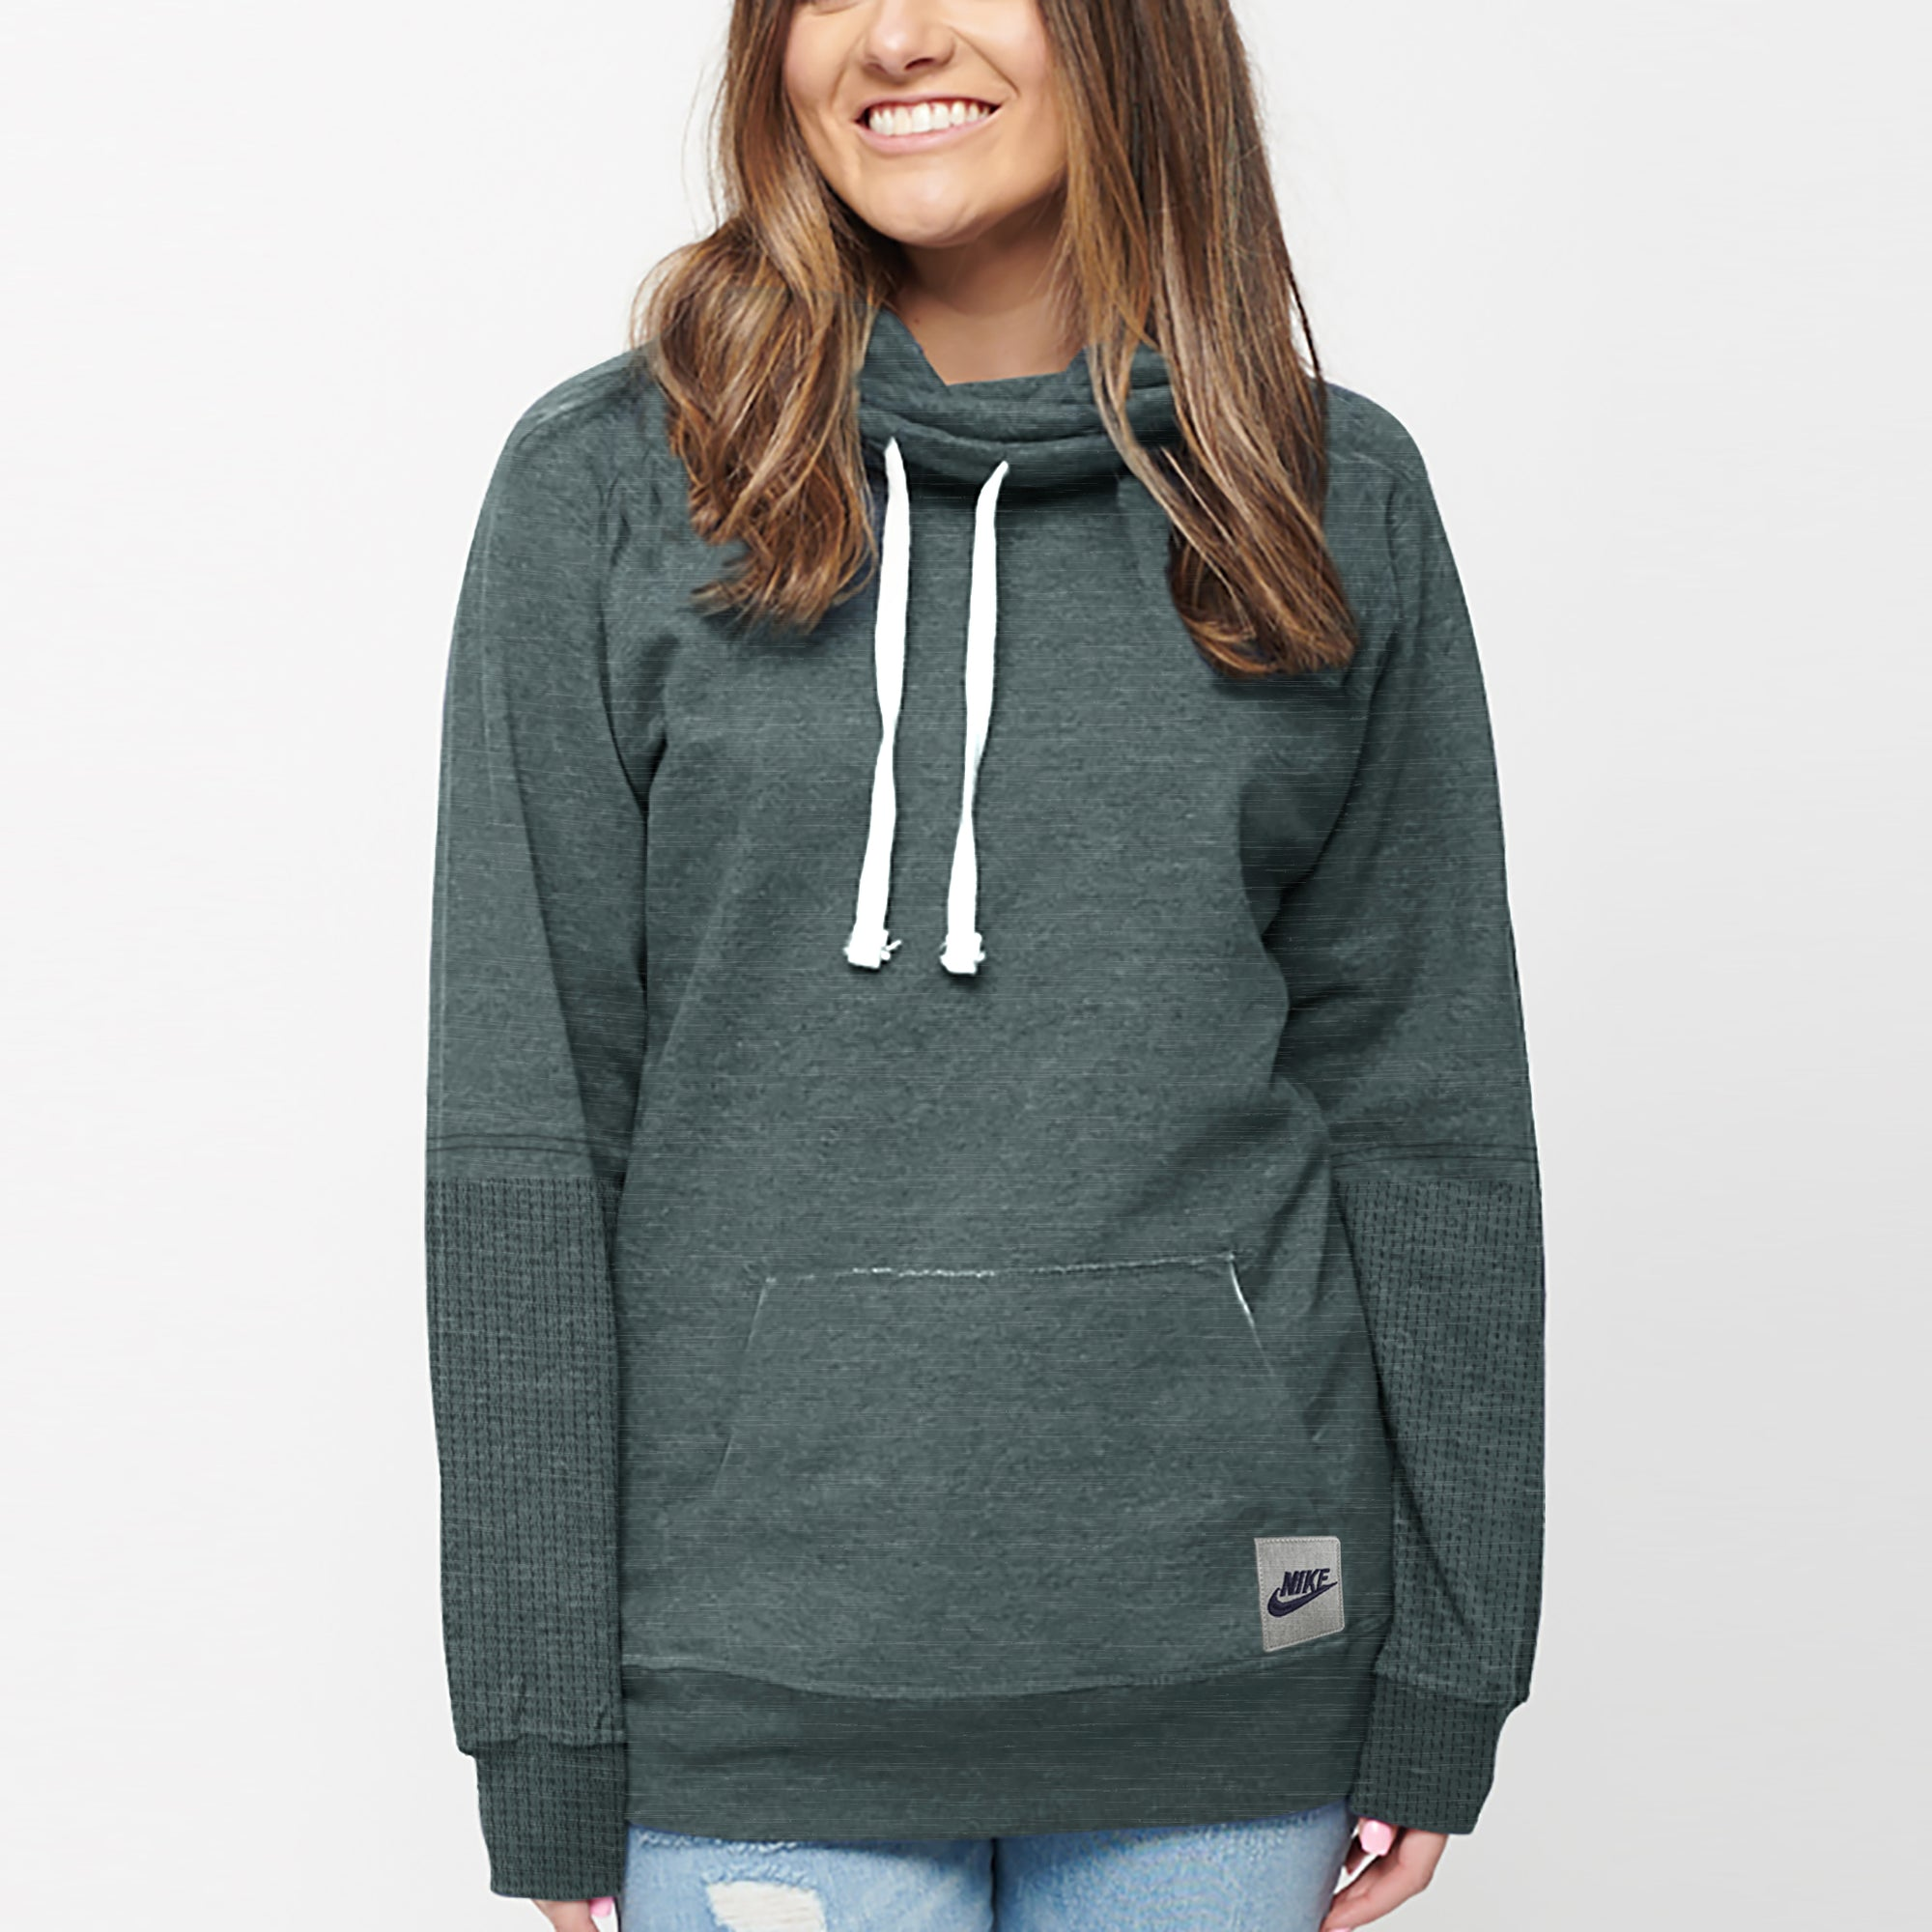 NK Terry Fleece Embroided Pullover High Neck Hoodie For Ladies-Dark Cyan Melange-SP1324